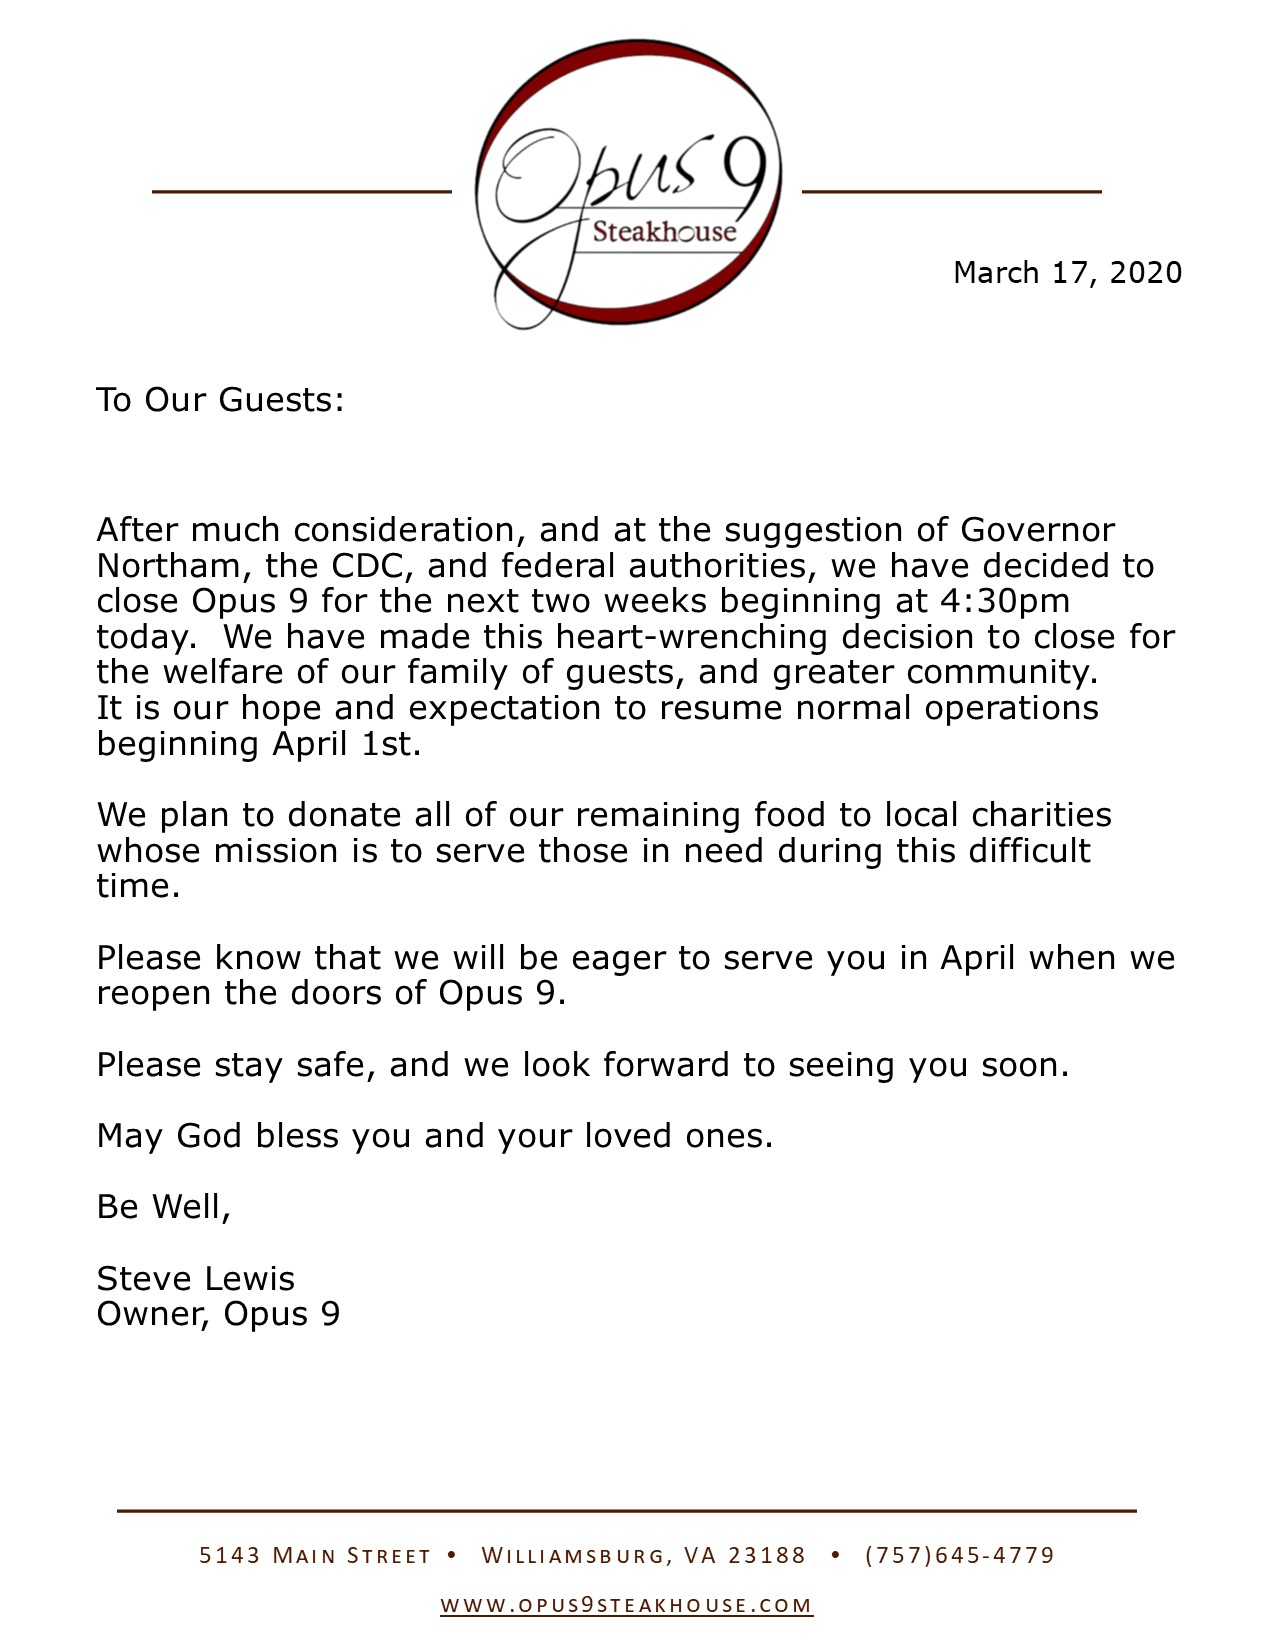 covid-closing-letter-opus